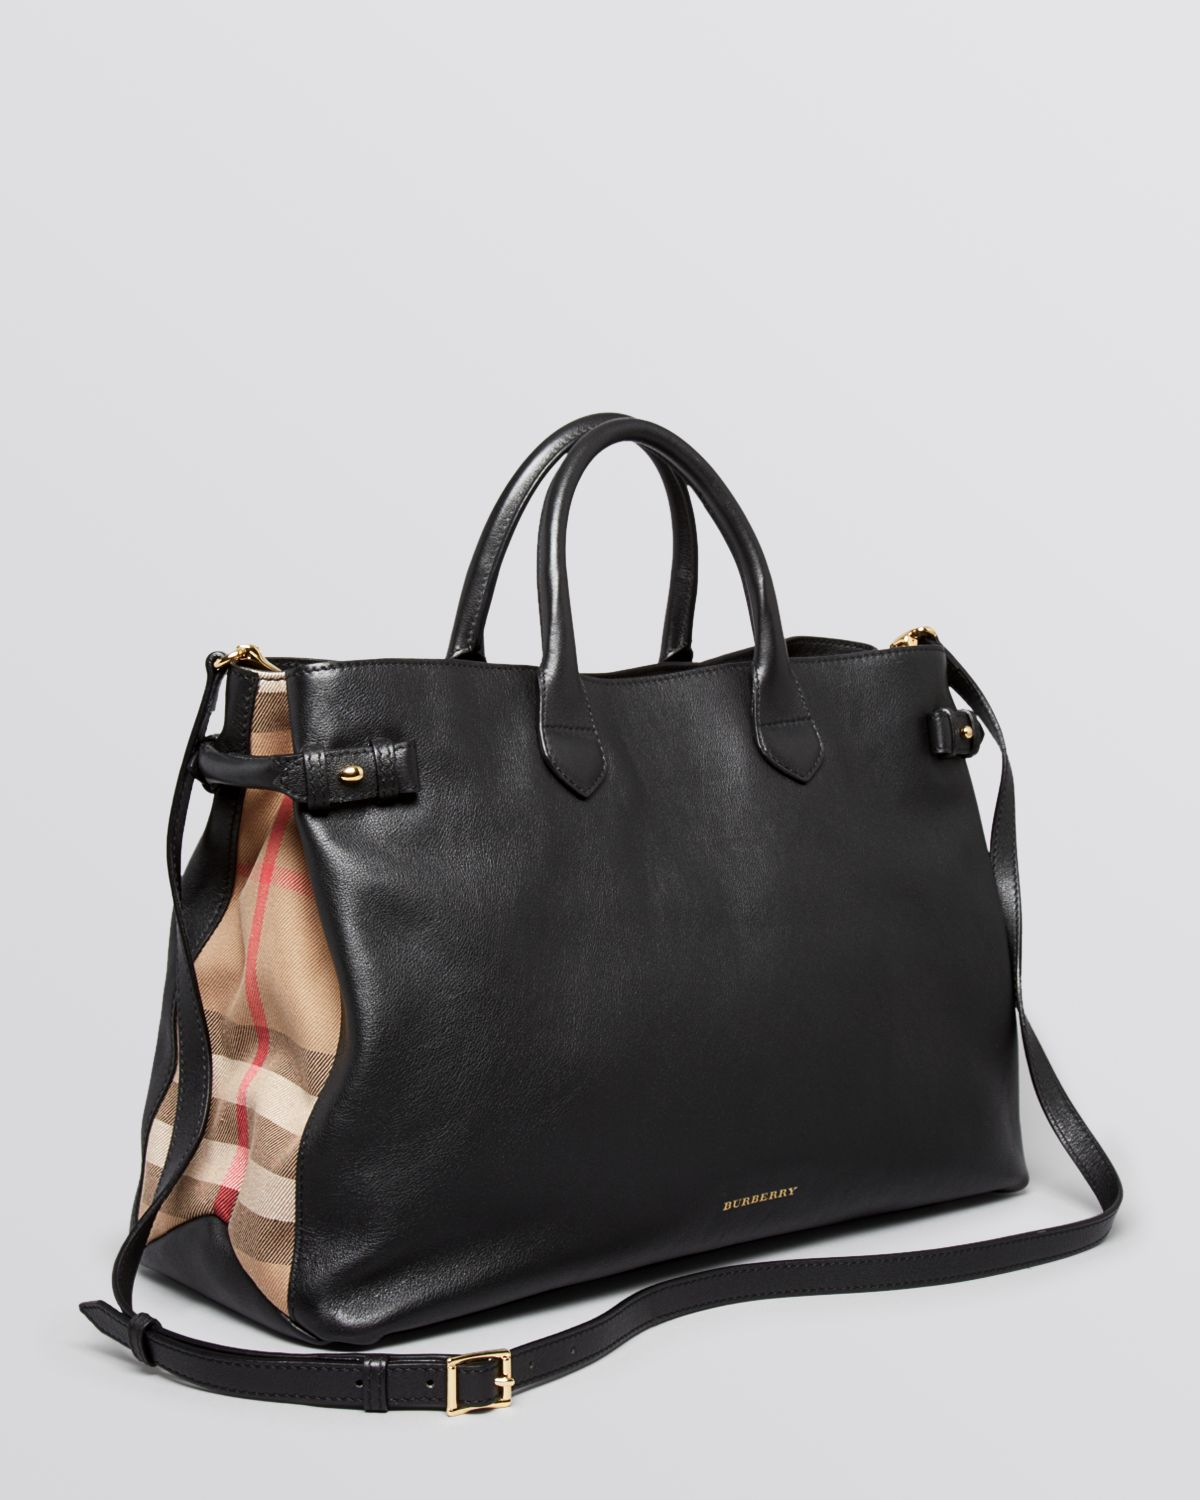 Lyst - Burberry Tote House Check Sartorial Large Banner in Black 9445860884